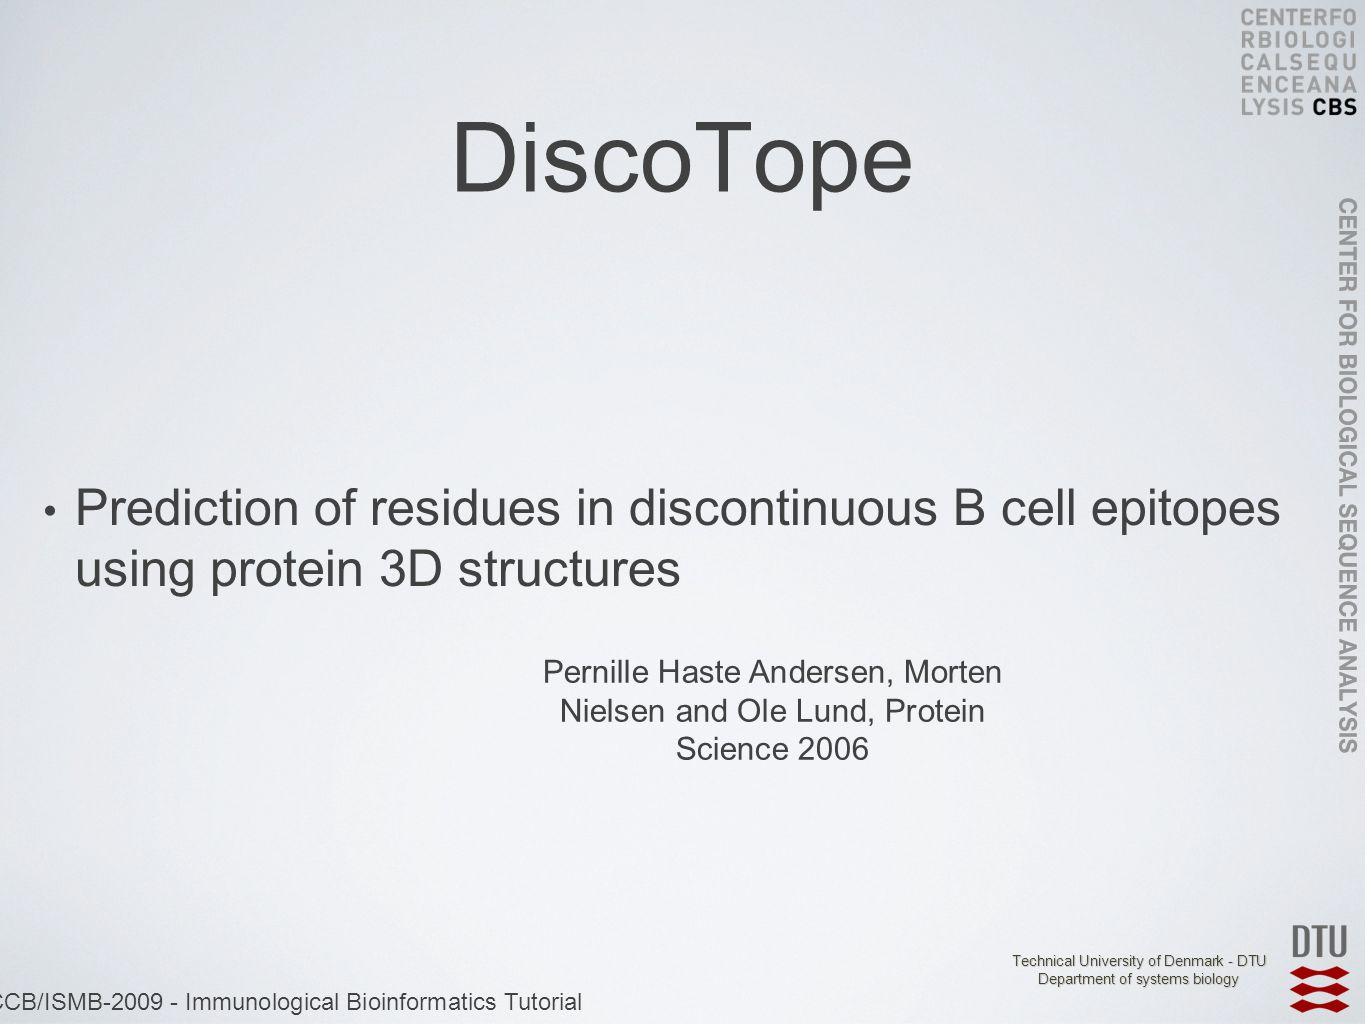 Technical University of Denmark - DTU Department of systems biology ECCB/ISMB-2009 - Immunological Bioinformatics Tutorial DiscoTope Prediction of residues in discontinuous B cell epitopes using protein 3D structures Pernille Haste Andersen, Morten Nielsen and Ole Lund, Protein Science 2006